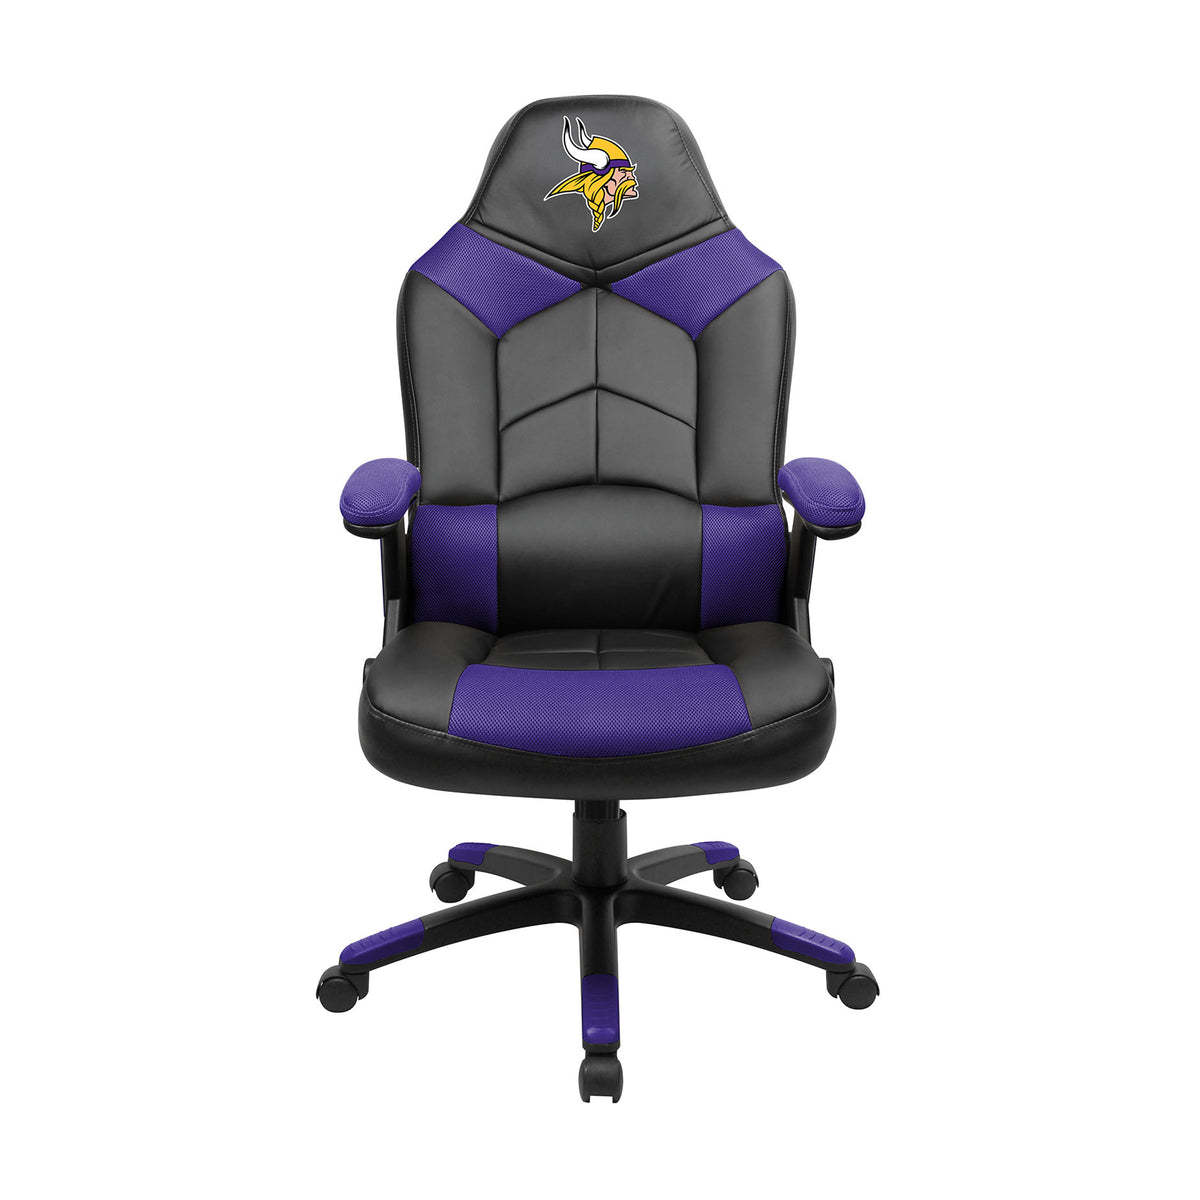 Minnesota Vikings Oversized Gaming Chair